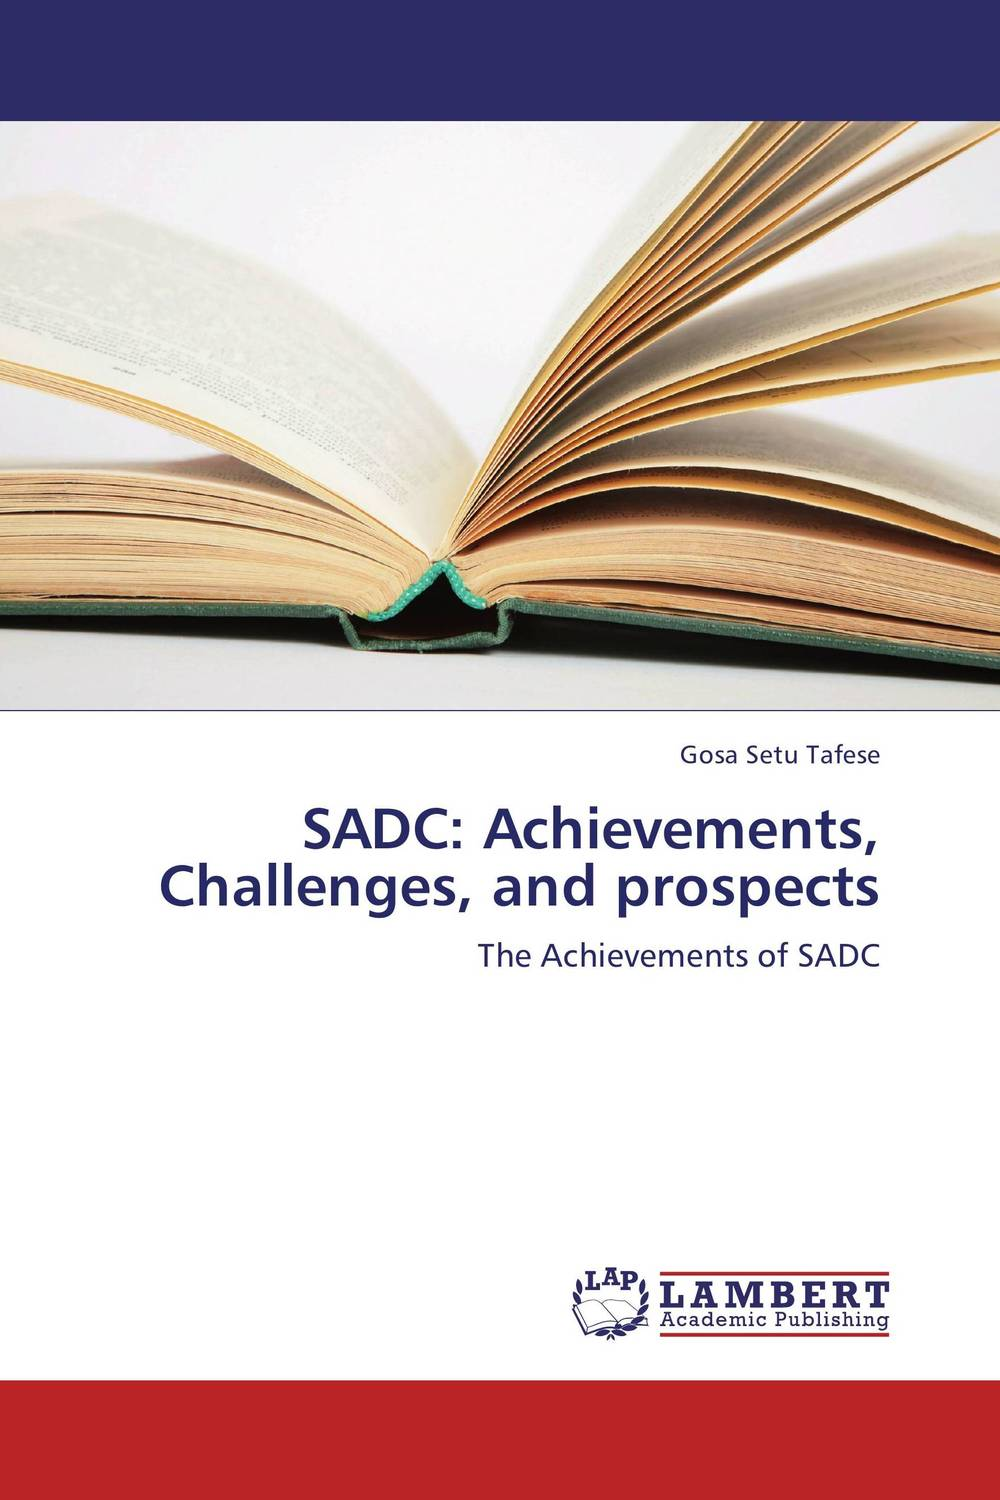 Фото SADC: Achievements, Challenges, and prospects cervical cancer in amhara region in ethiopia